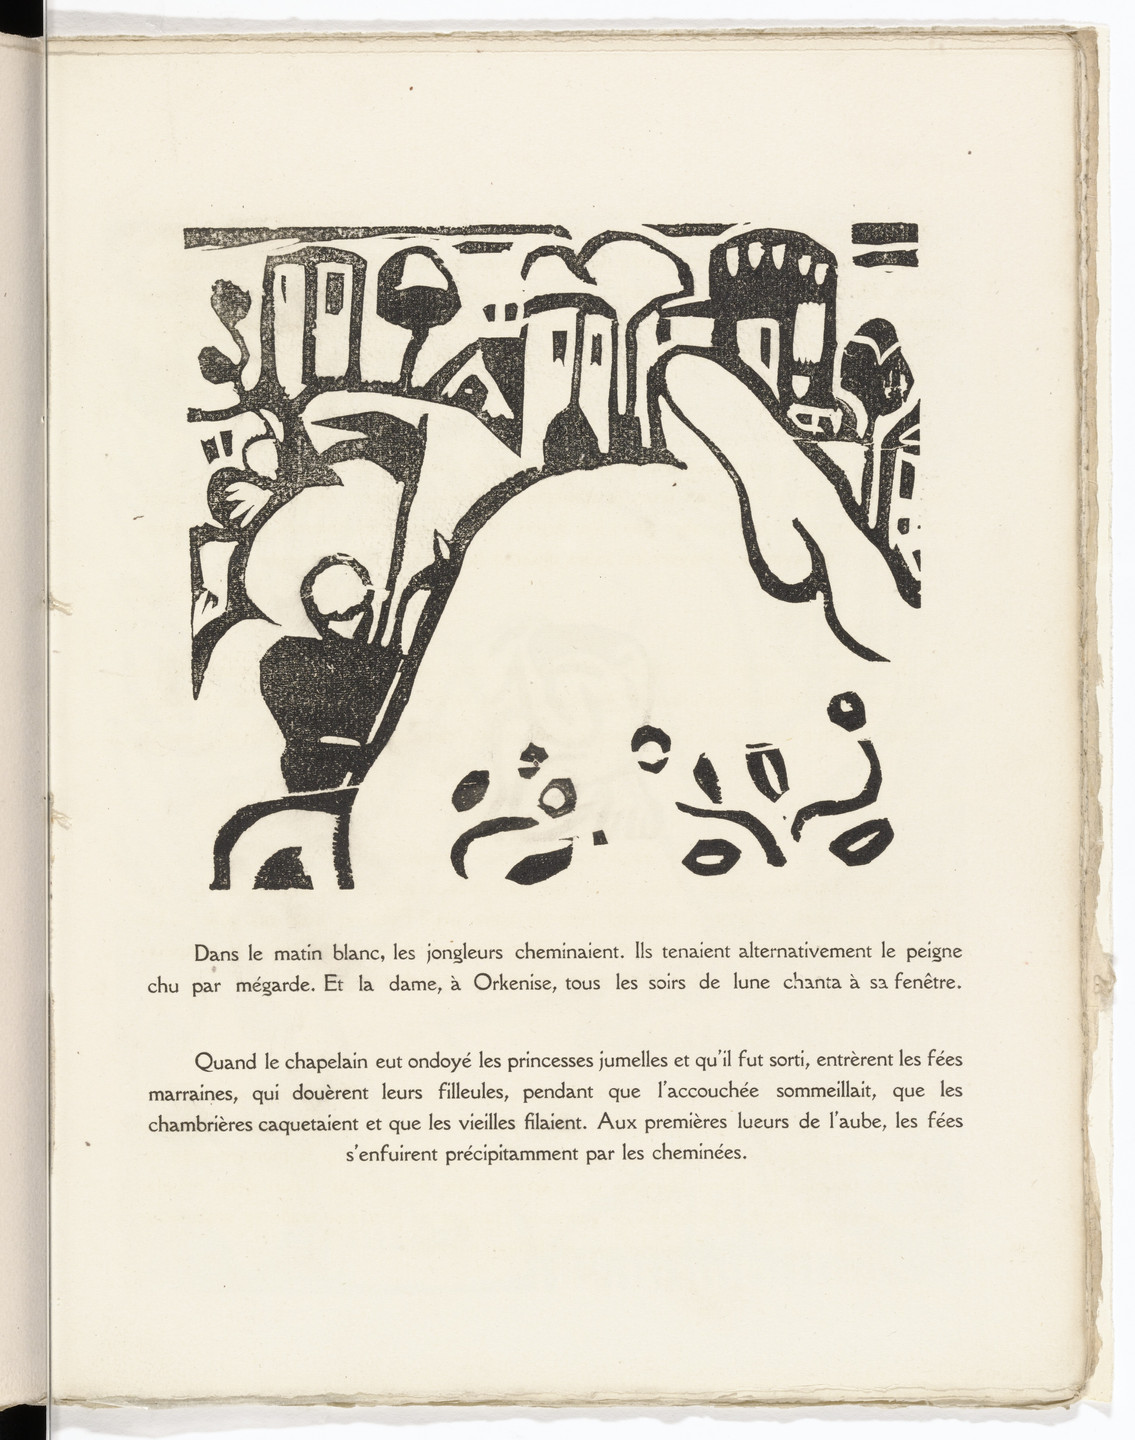 André Derain. In-text plate (folio 28) from L'Enchanteur pourrissant. 1909